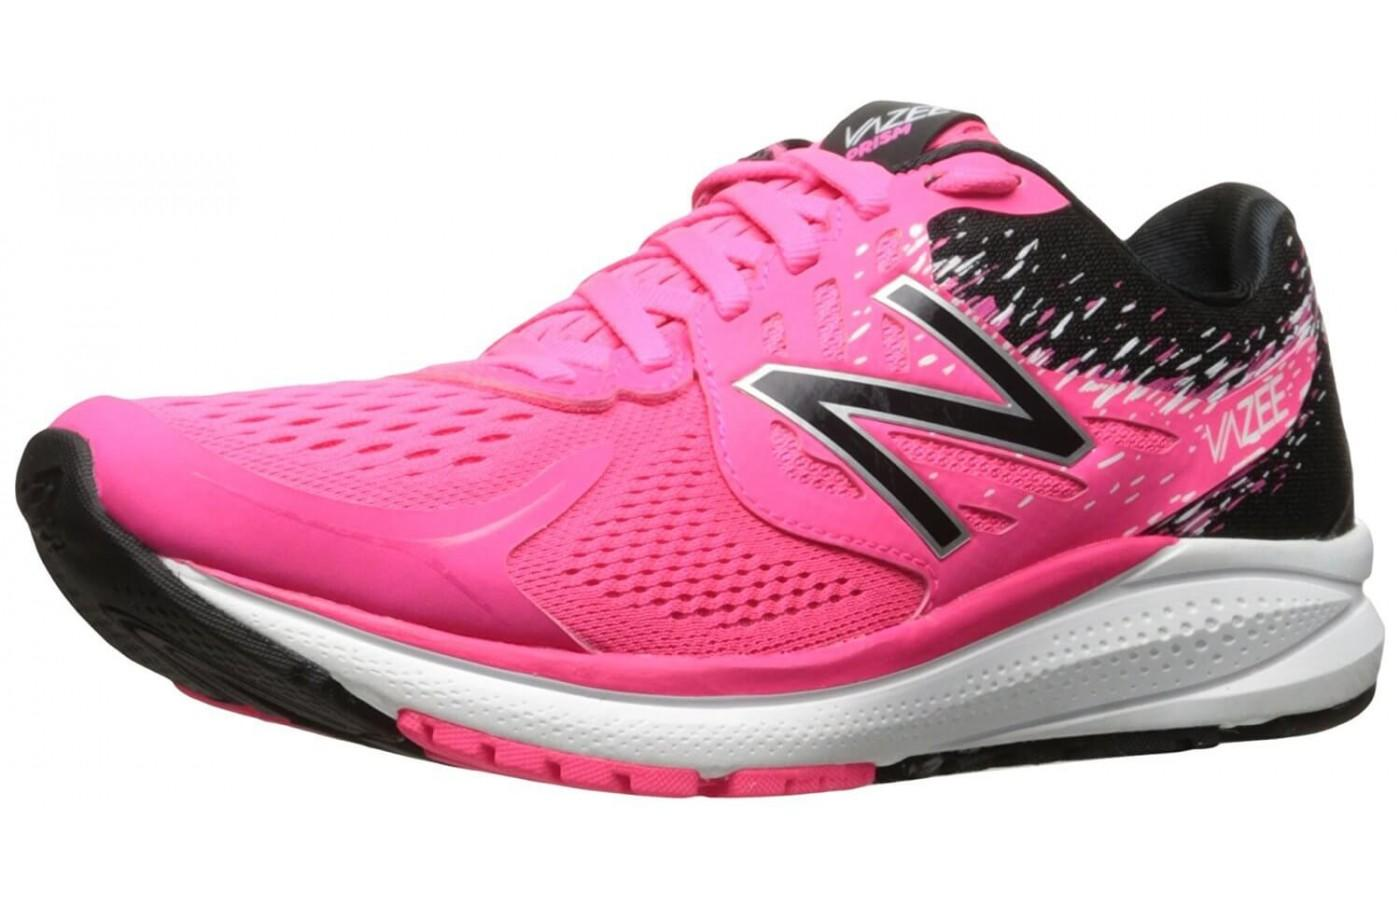 The New Balance Vazee Prism V2 is a high quality stability shoe.